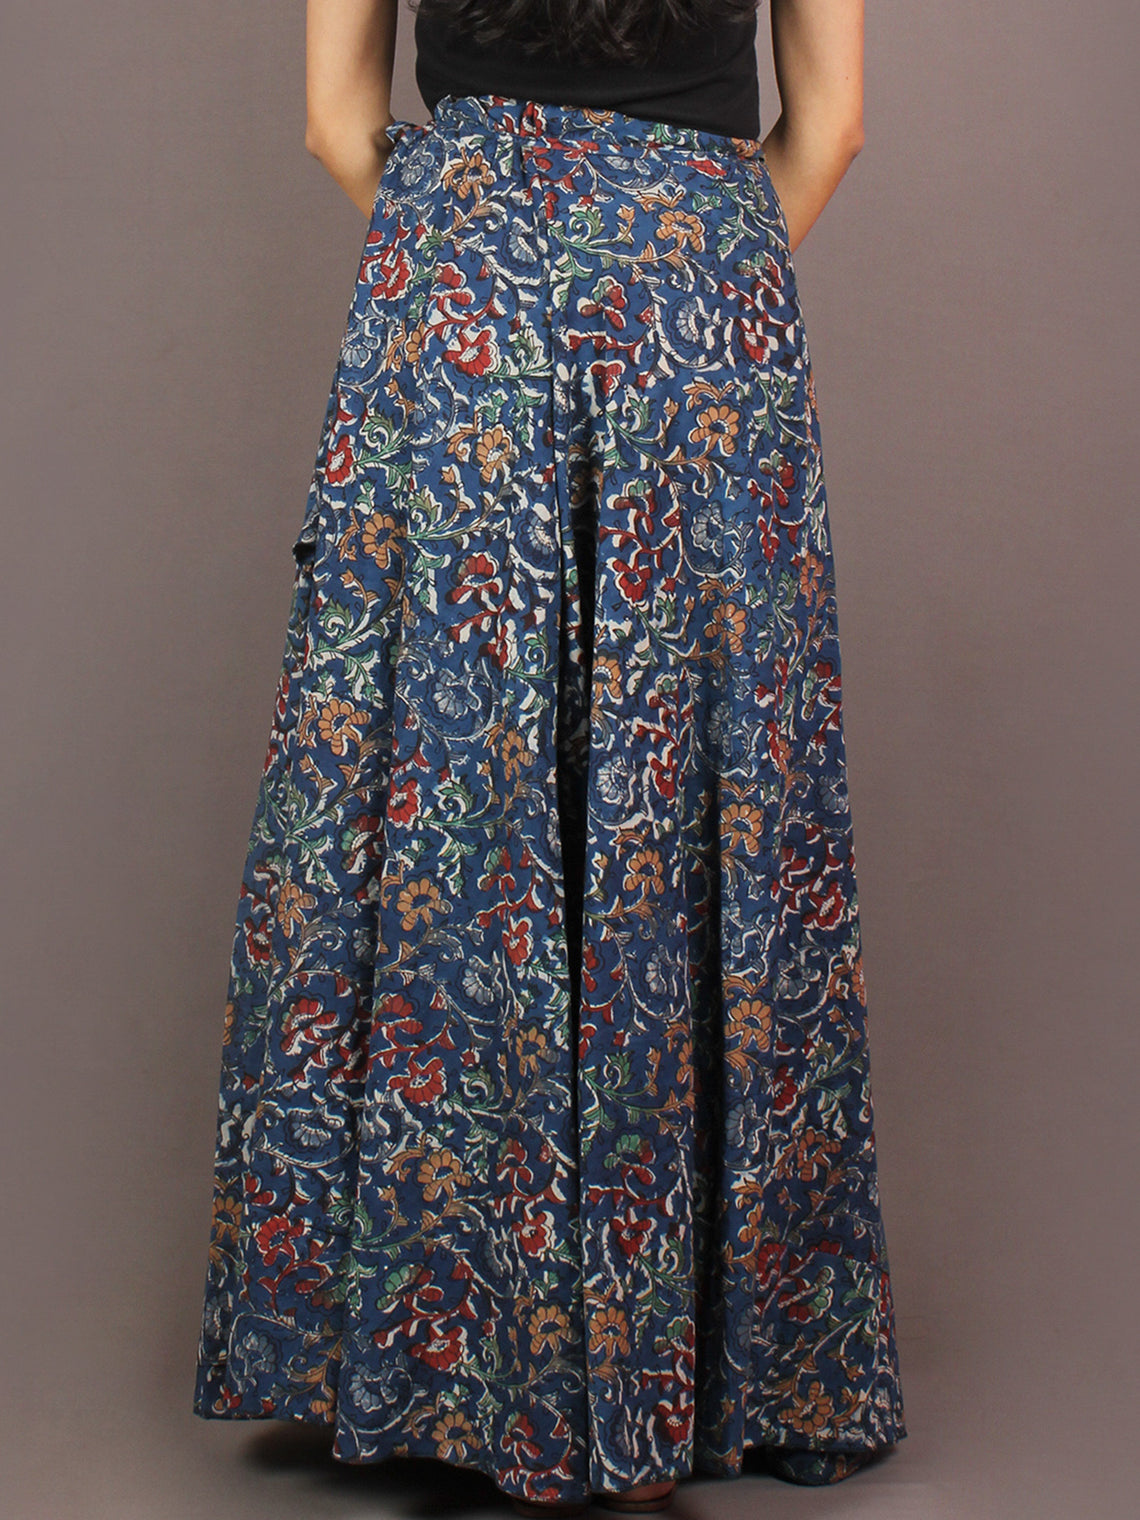 Hand Block Printed Wrap Around Skirt In Blue Multi Colour - S401008